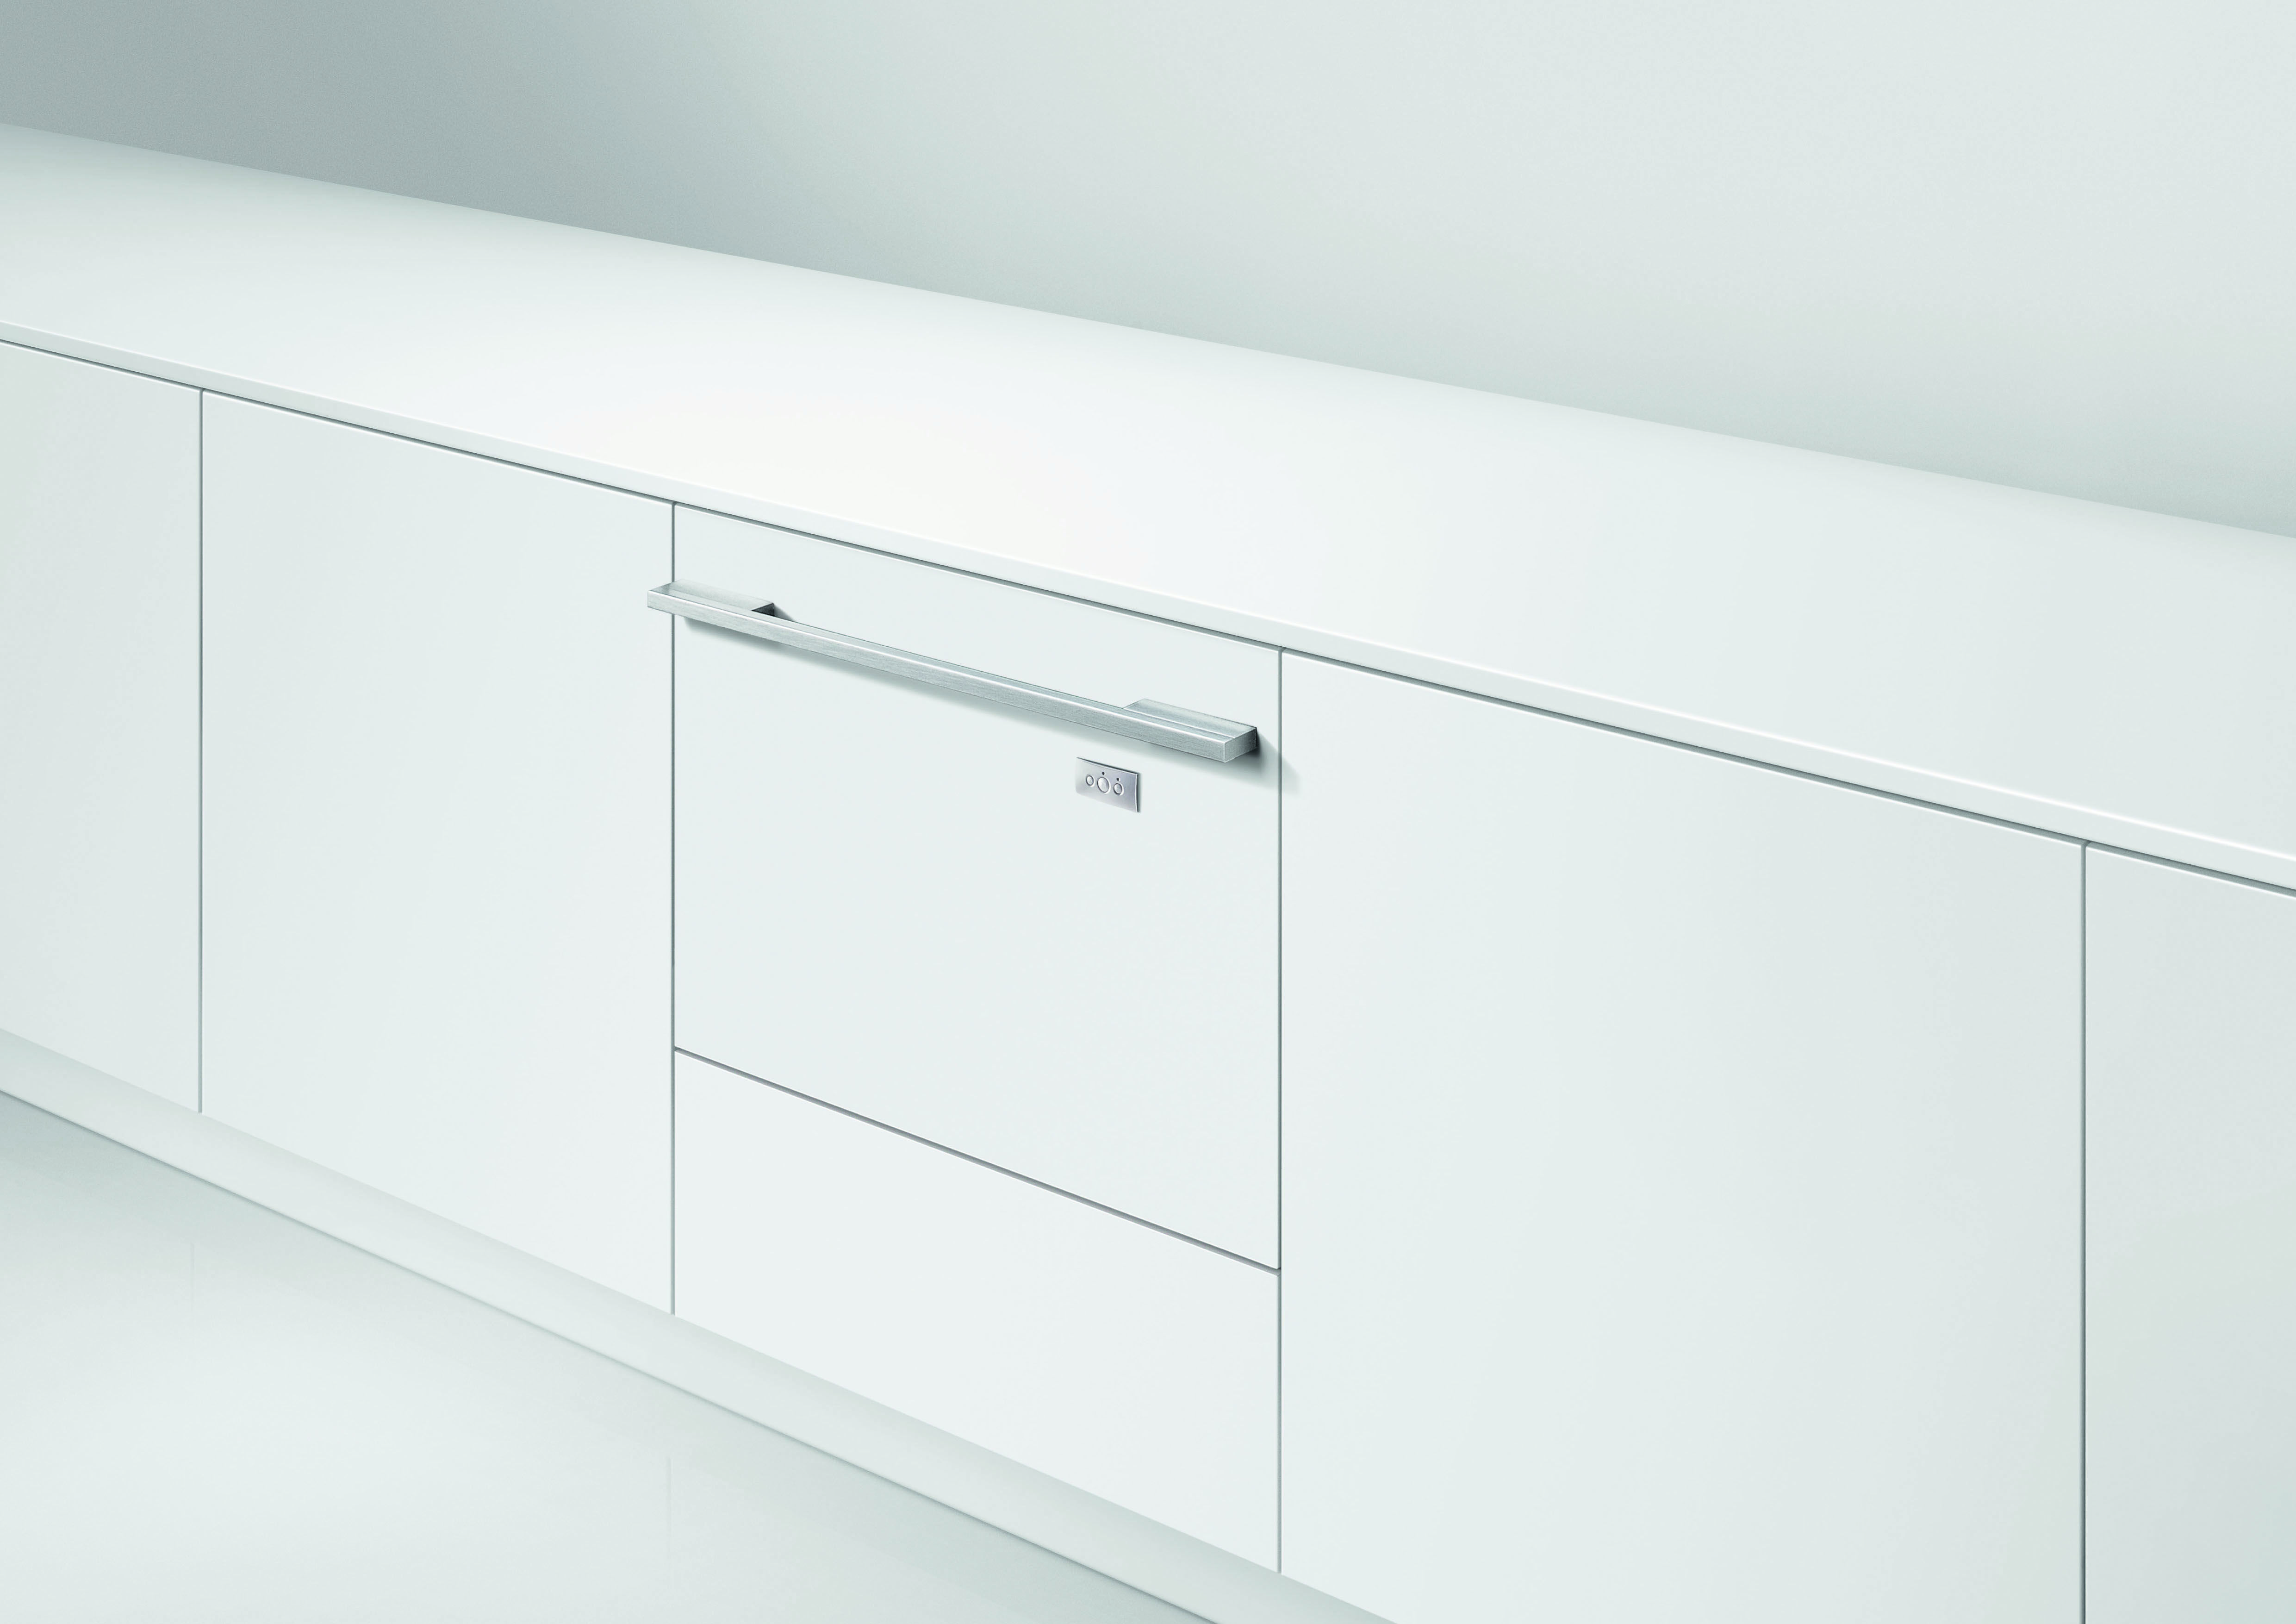 boiler of concept single stunning u appealing sink cabinets conceal trend under drawer inspiration machine and ideas dishwasher for washing